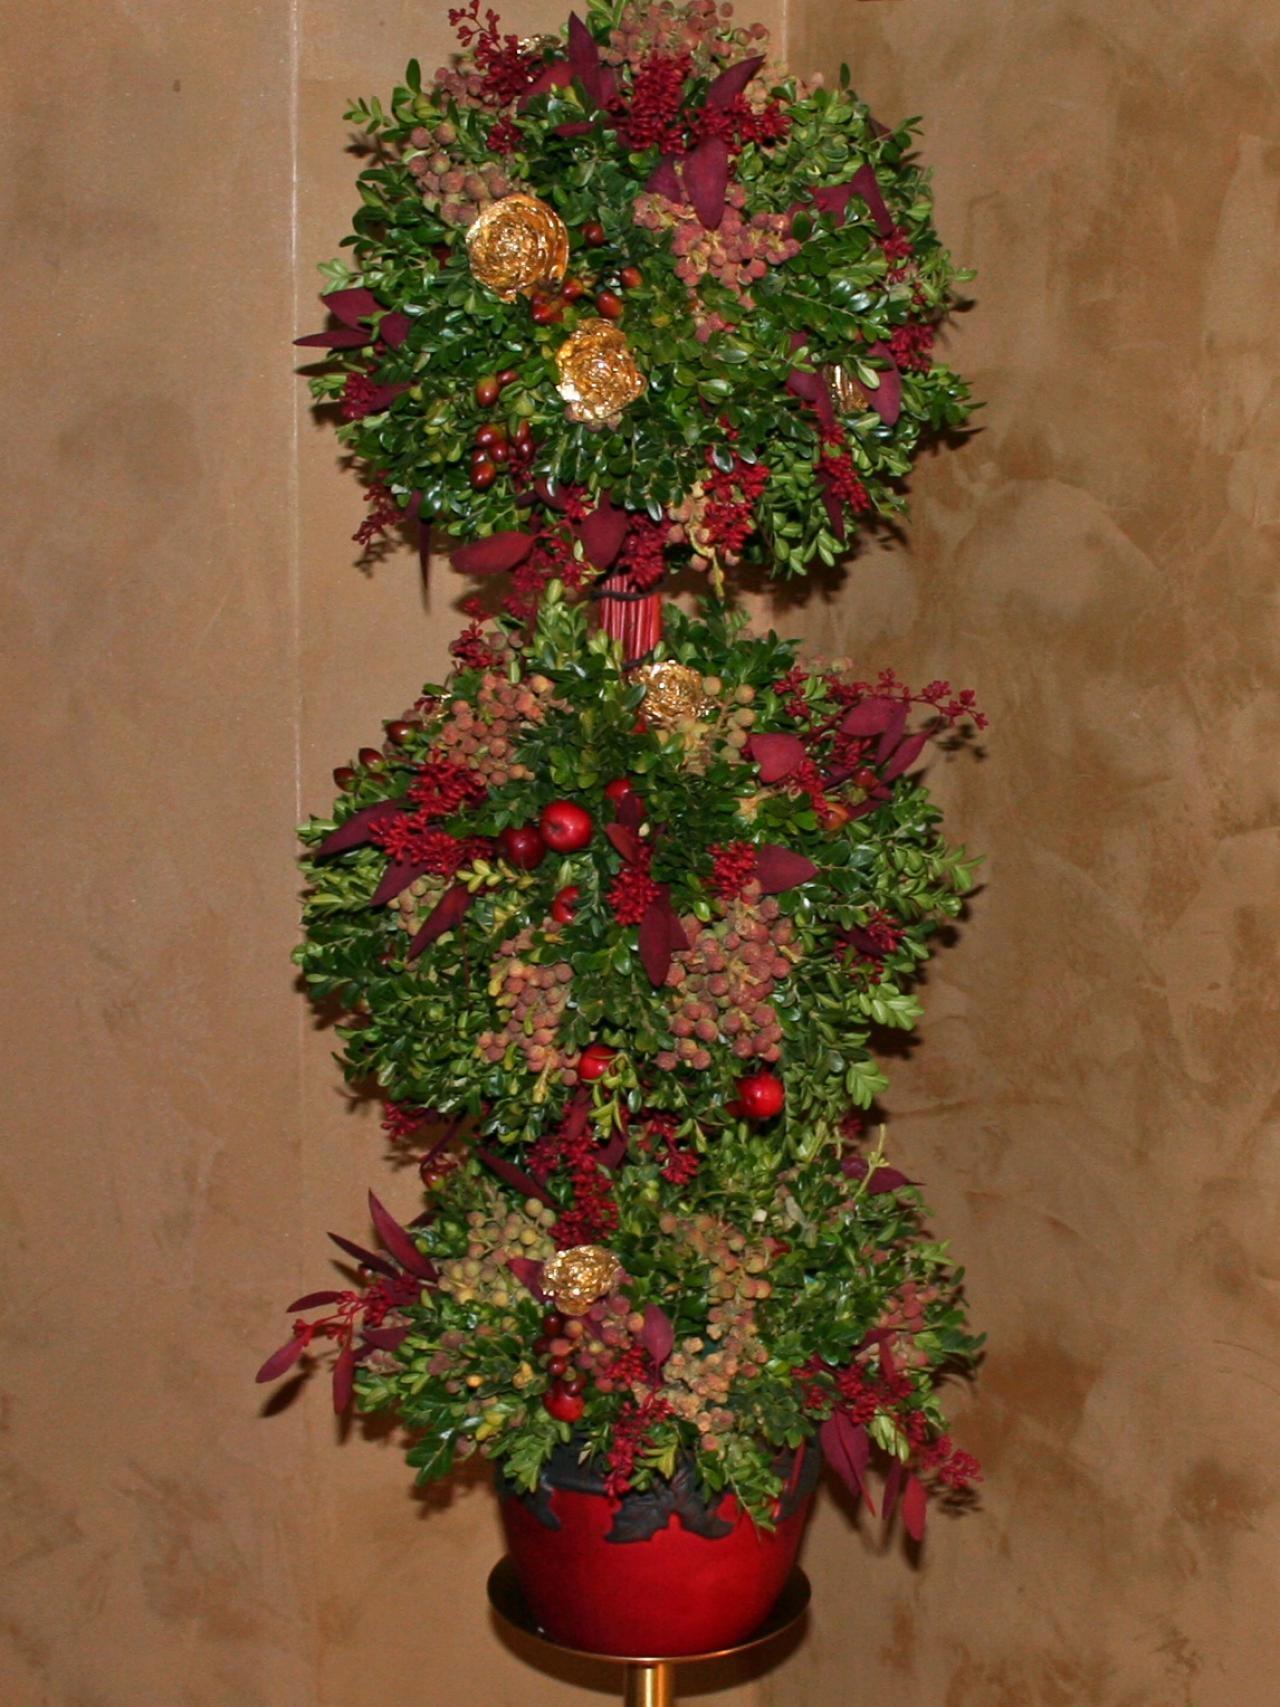 Christmas Topiary Decor.European Old World Topiary Hgtv